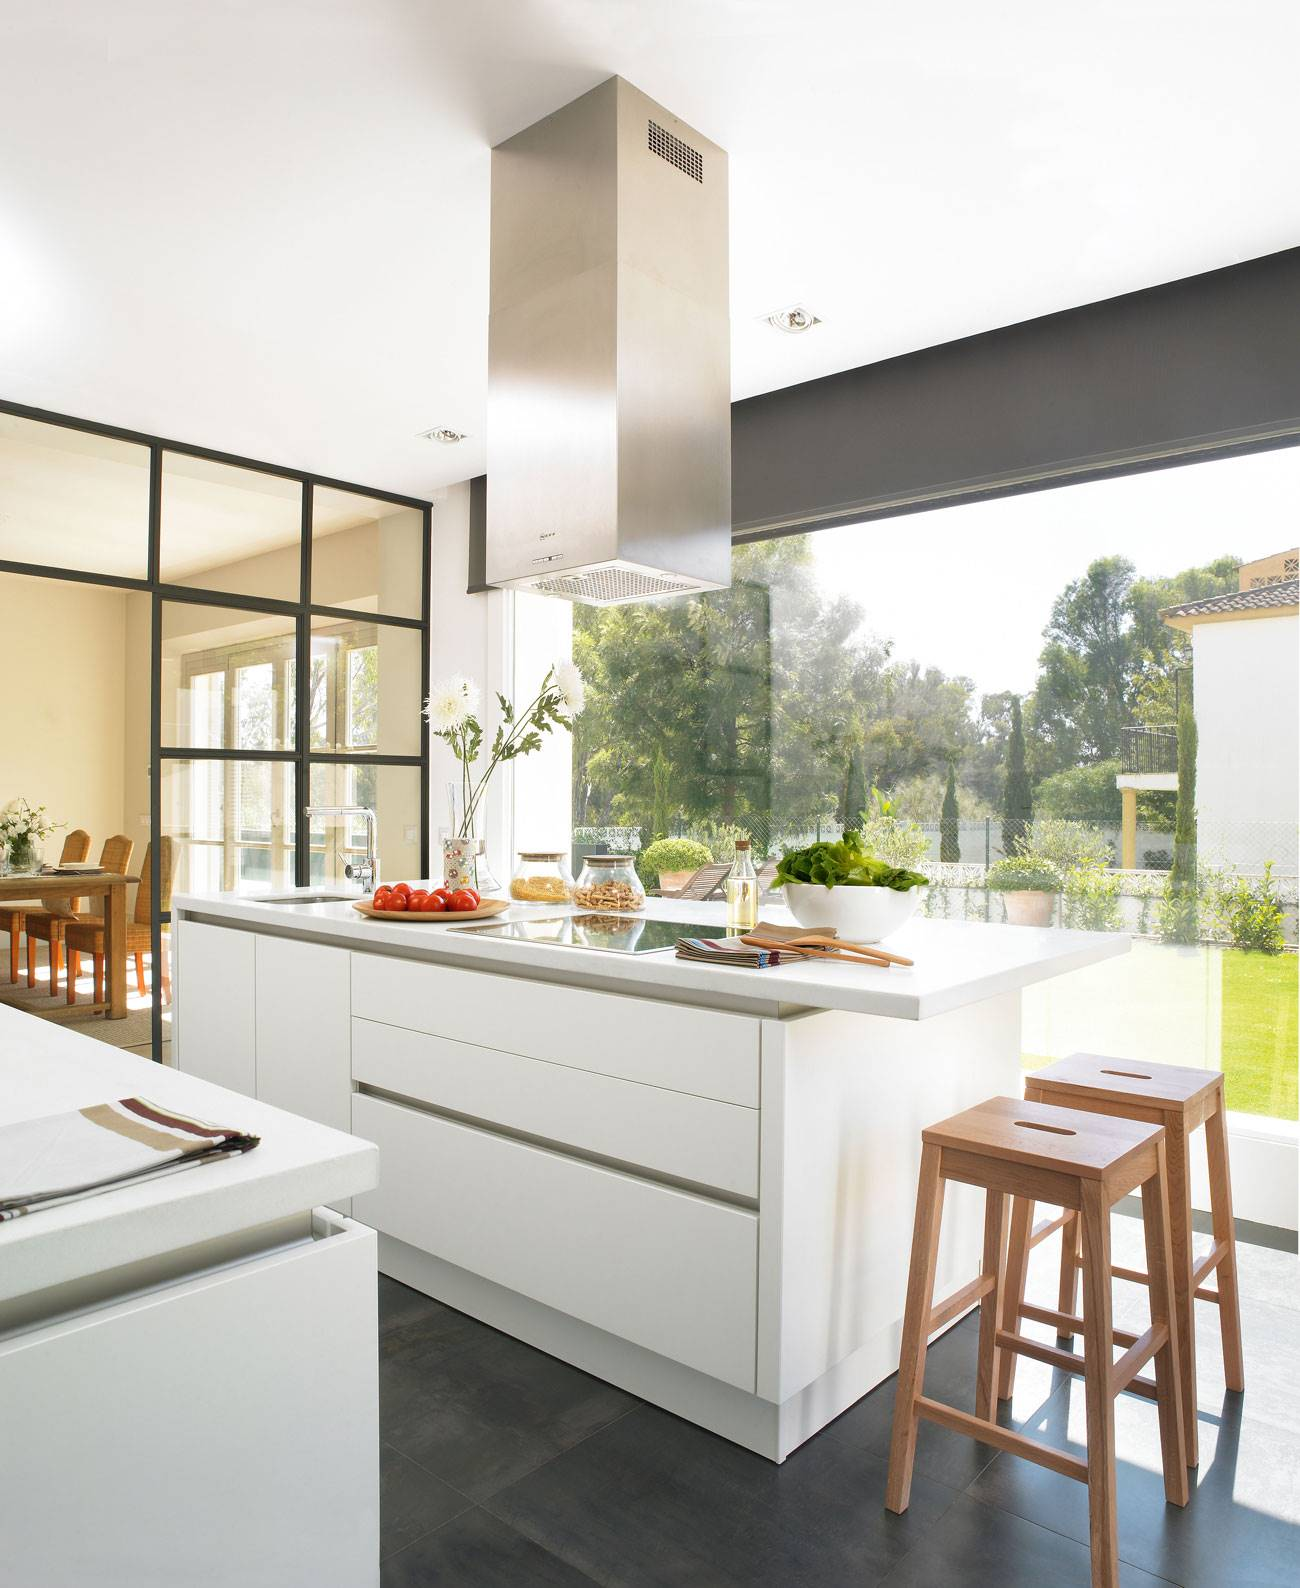 kitchen-with-island-front-large-window-with-garden-views 316220. Towards the garden